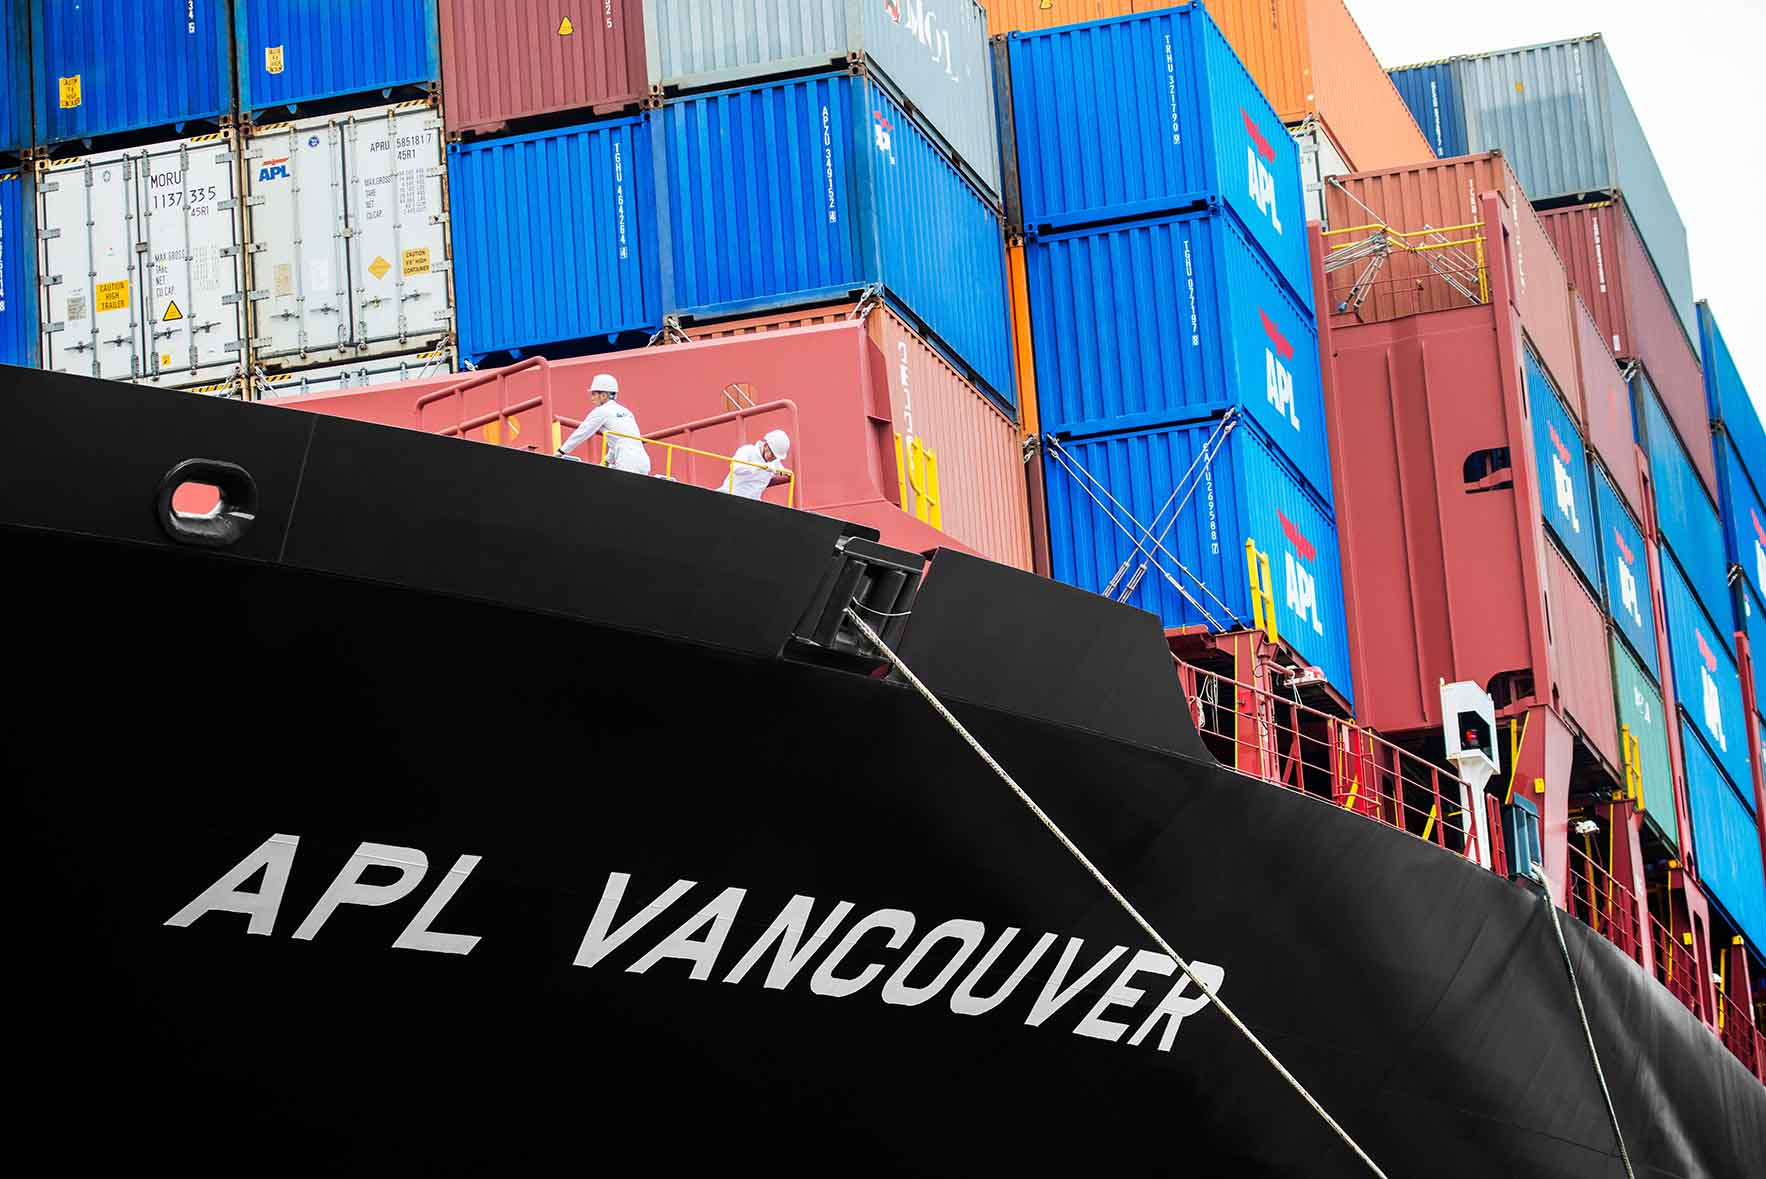 APL Seafarers – Preparing for Vessel Departure APL Vancouver (9,000 TEU)